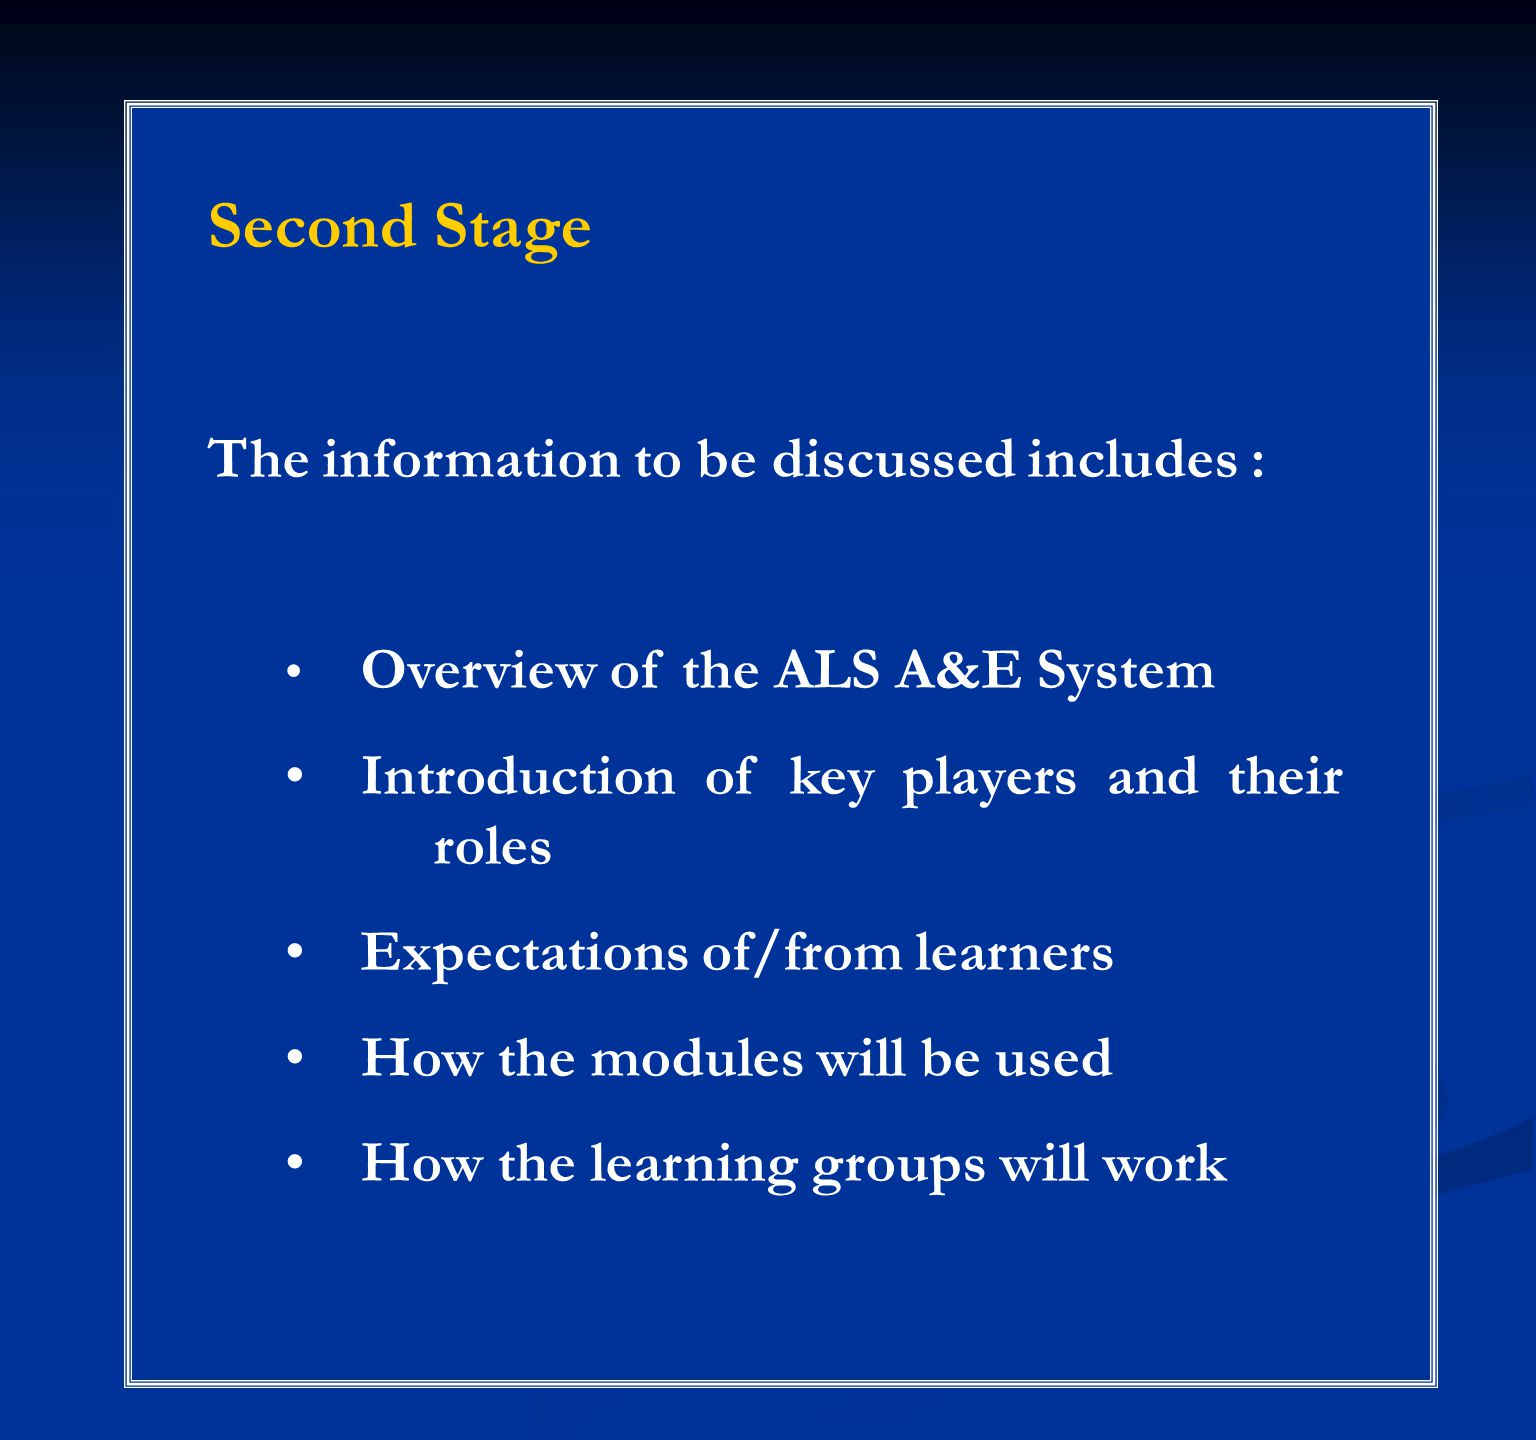 Second Stage The information to be discussed includes : Overview of the ALS A&E System Introduction of key players and their roles Expectations of/from learners How the modules will be used How the learning groups will work